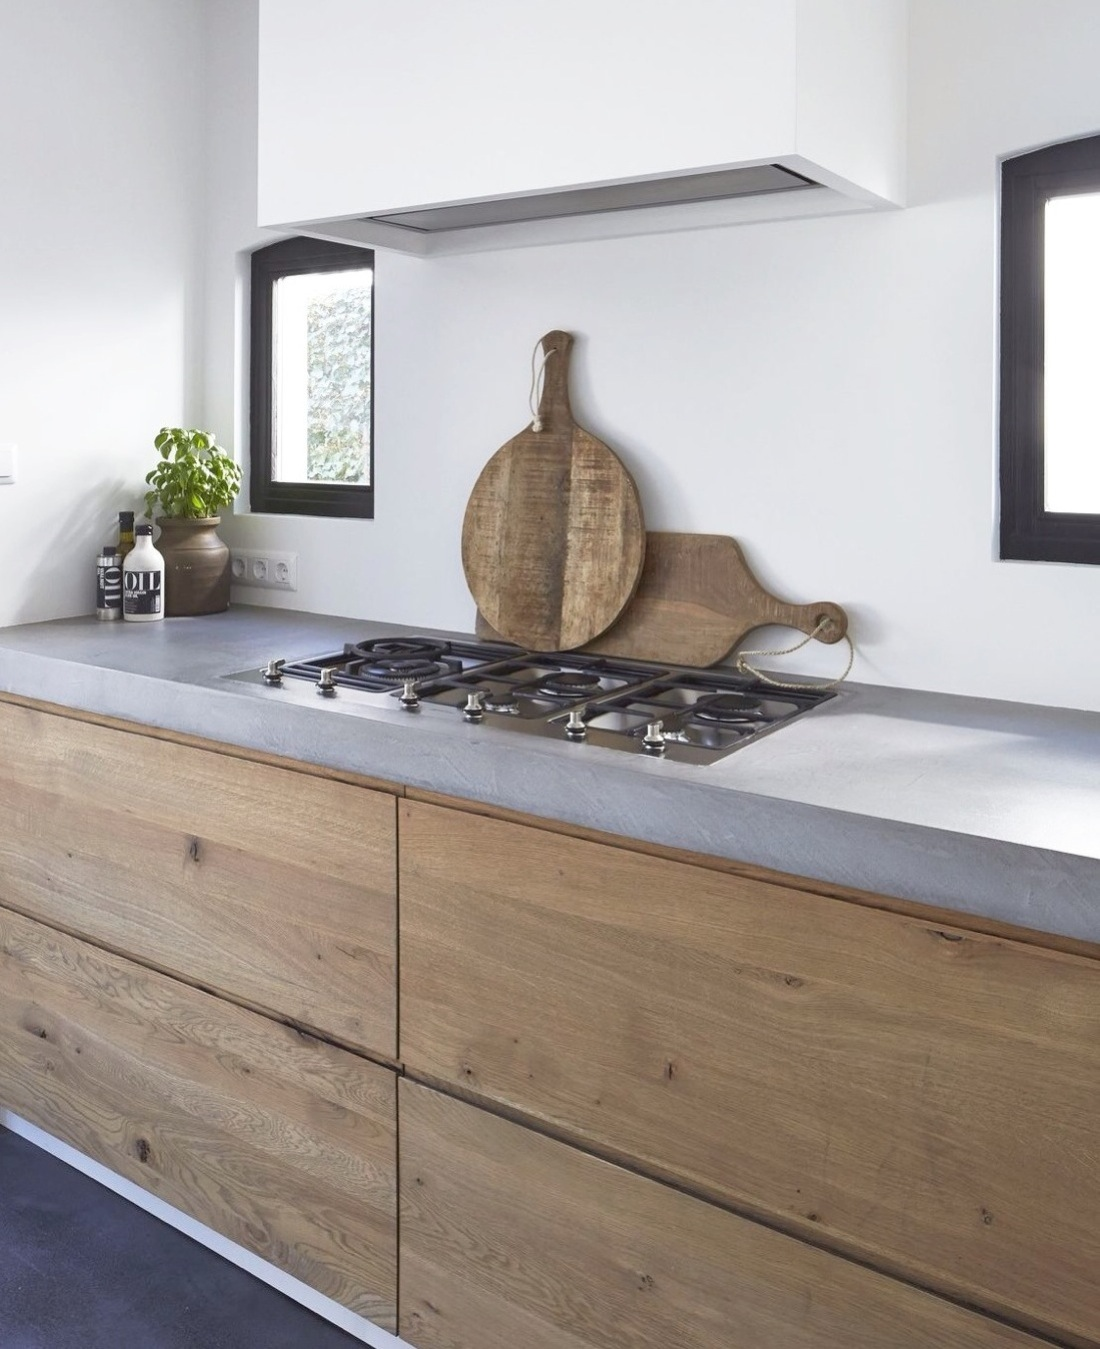 Recycled Timber Drawers Concrete Kitchen Counter